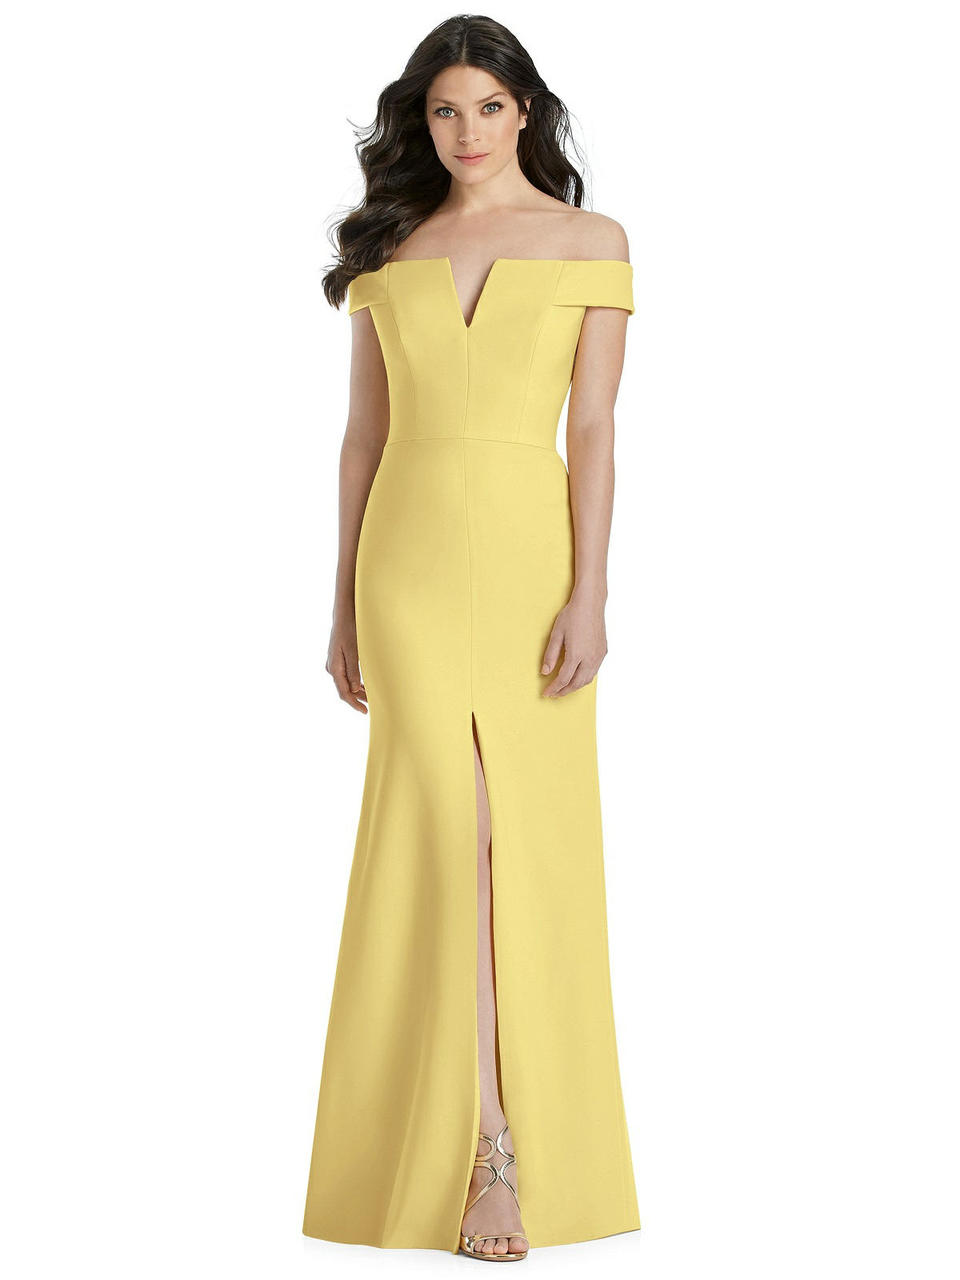 4ae7aaa6dd72 Dessy Bridesmaid Dress 3038 -Crepe. Tap to expand